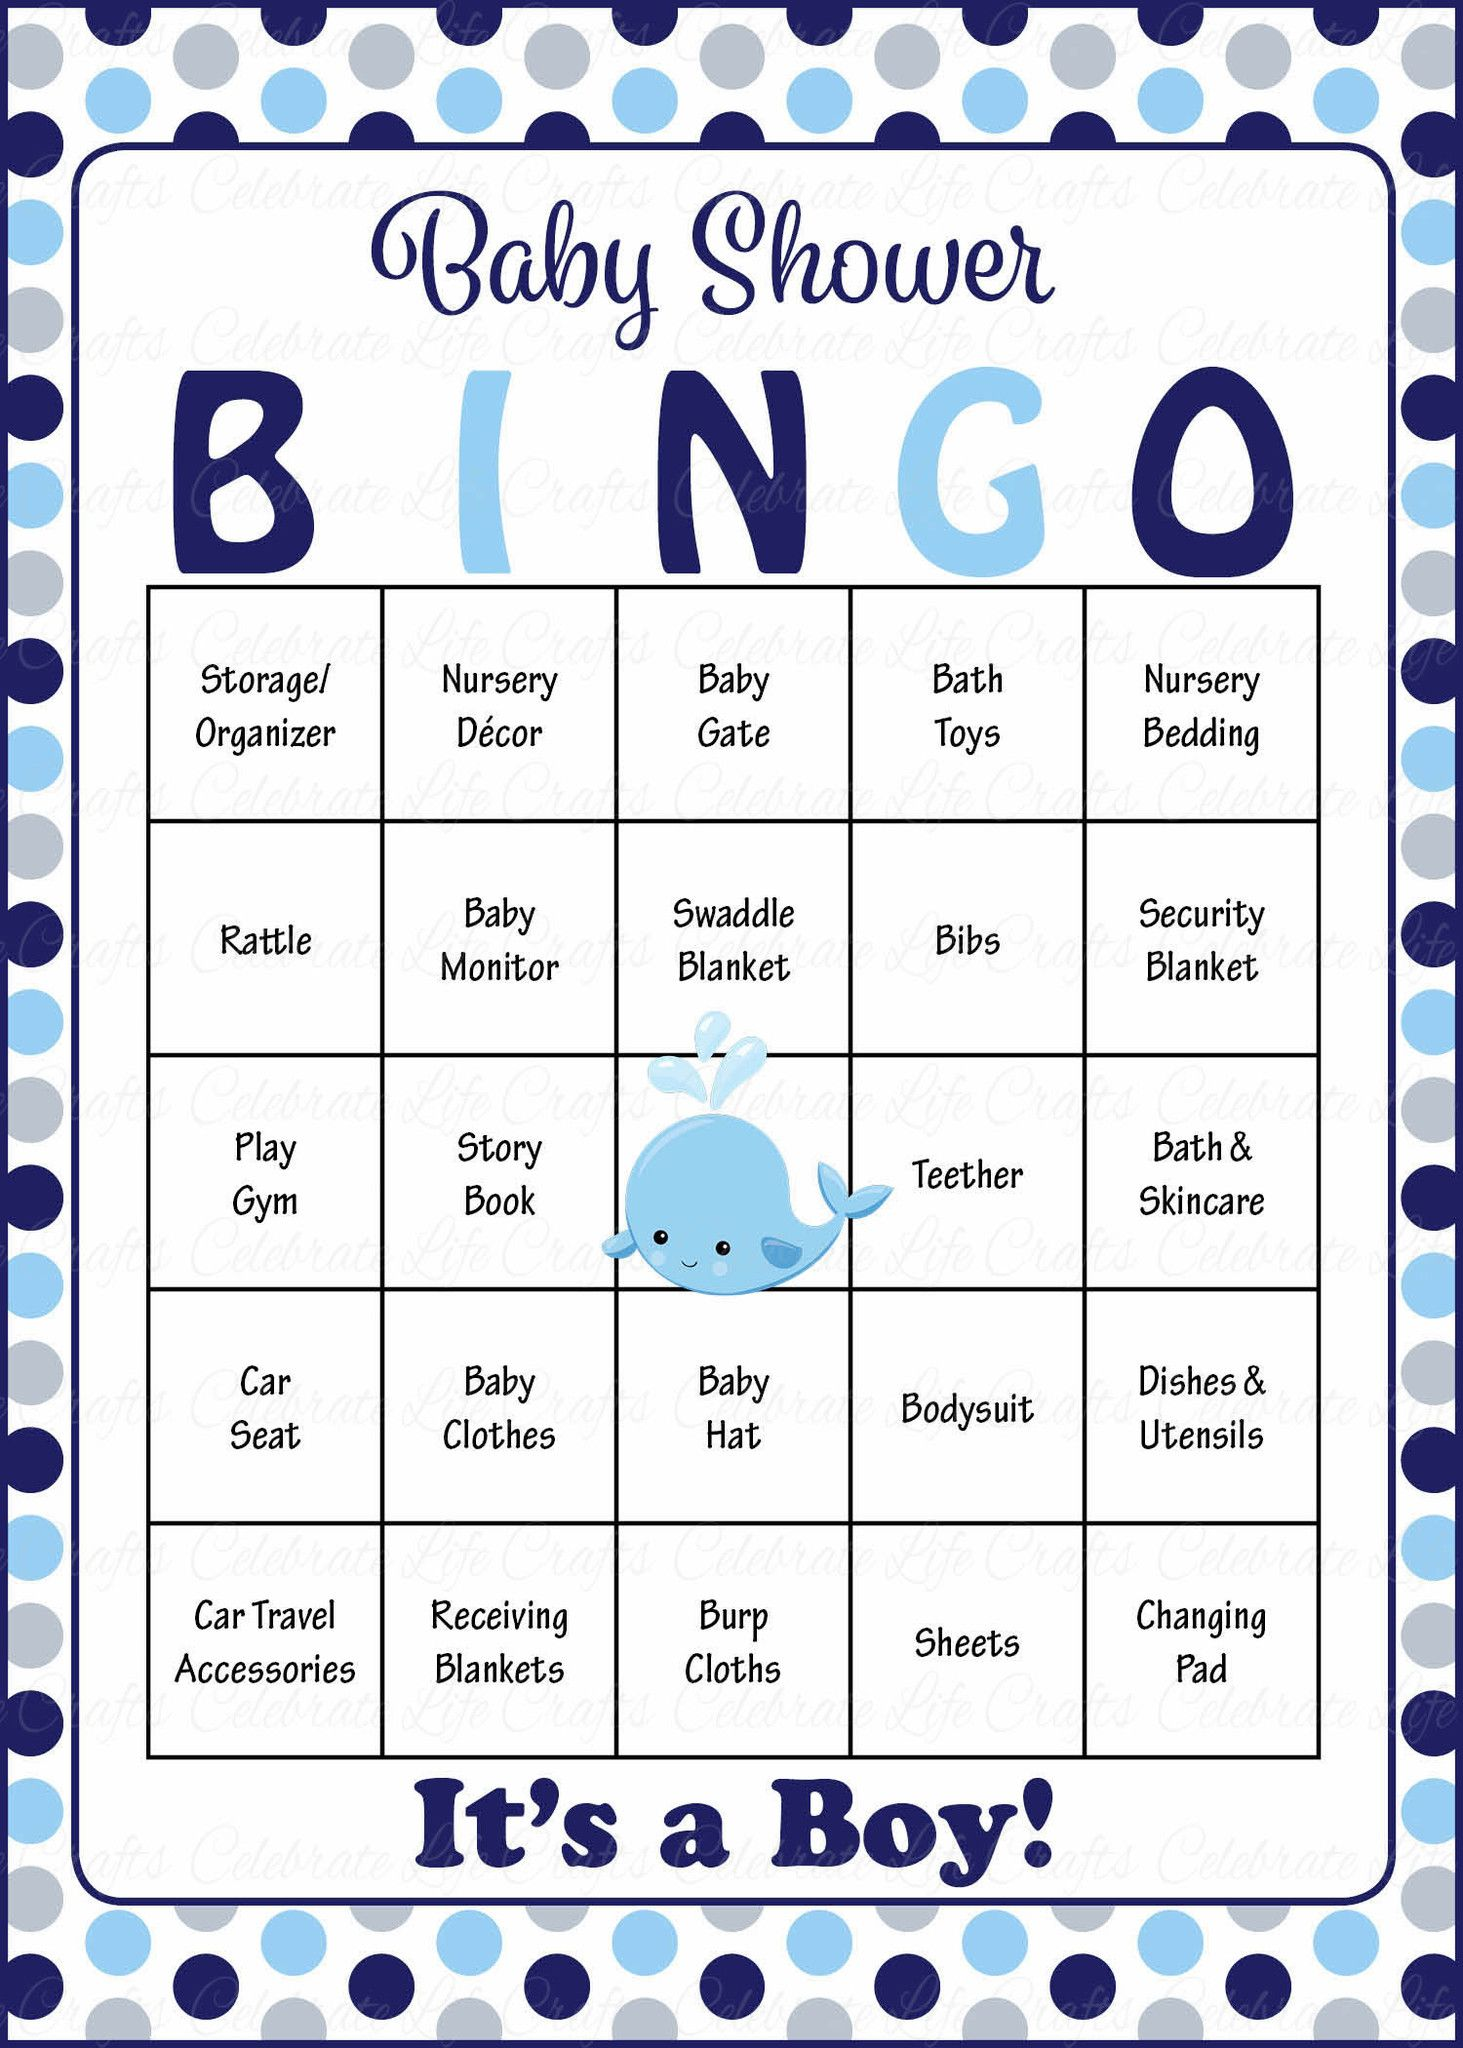 Whale Baby Bingo Cards Printable Download Prefilled Baby Shower Game For Boy Navy Gray Polka Dots B15007 Baby Shower Bingo Gray Elephant Baby Shower Baby Shower Gift Bingo